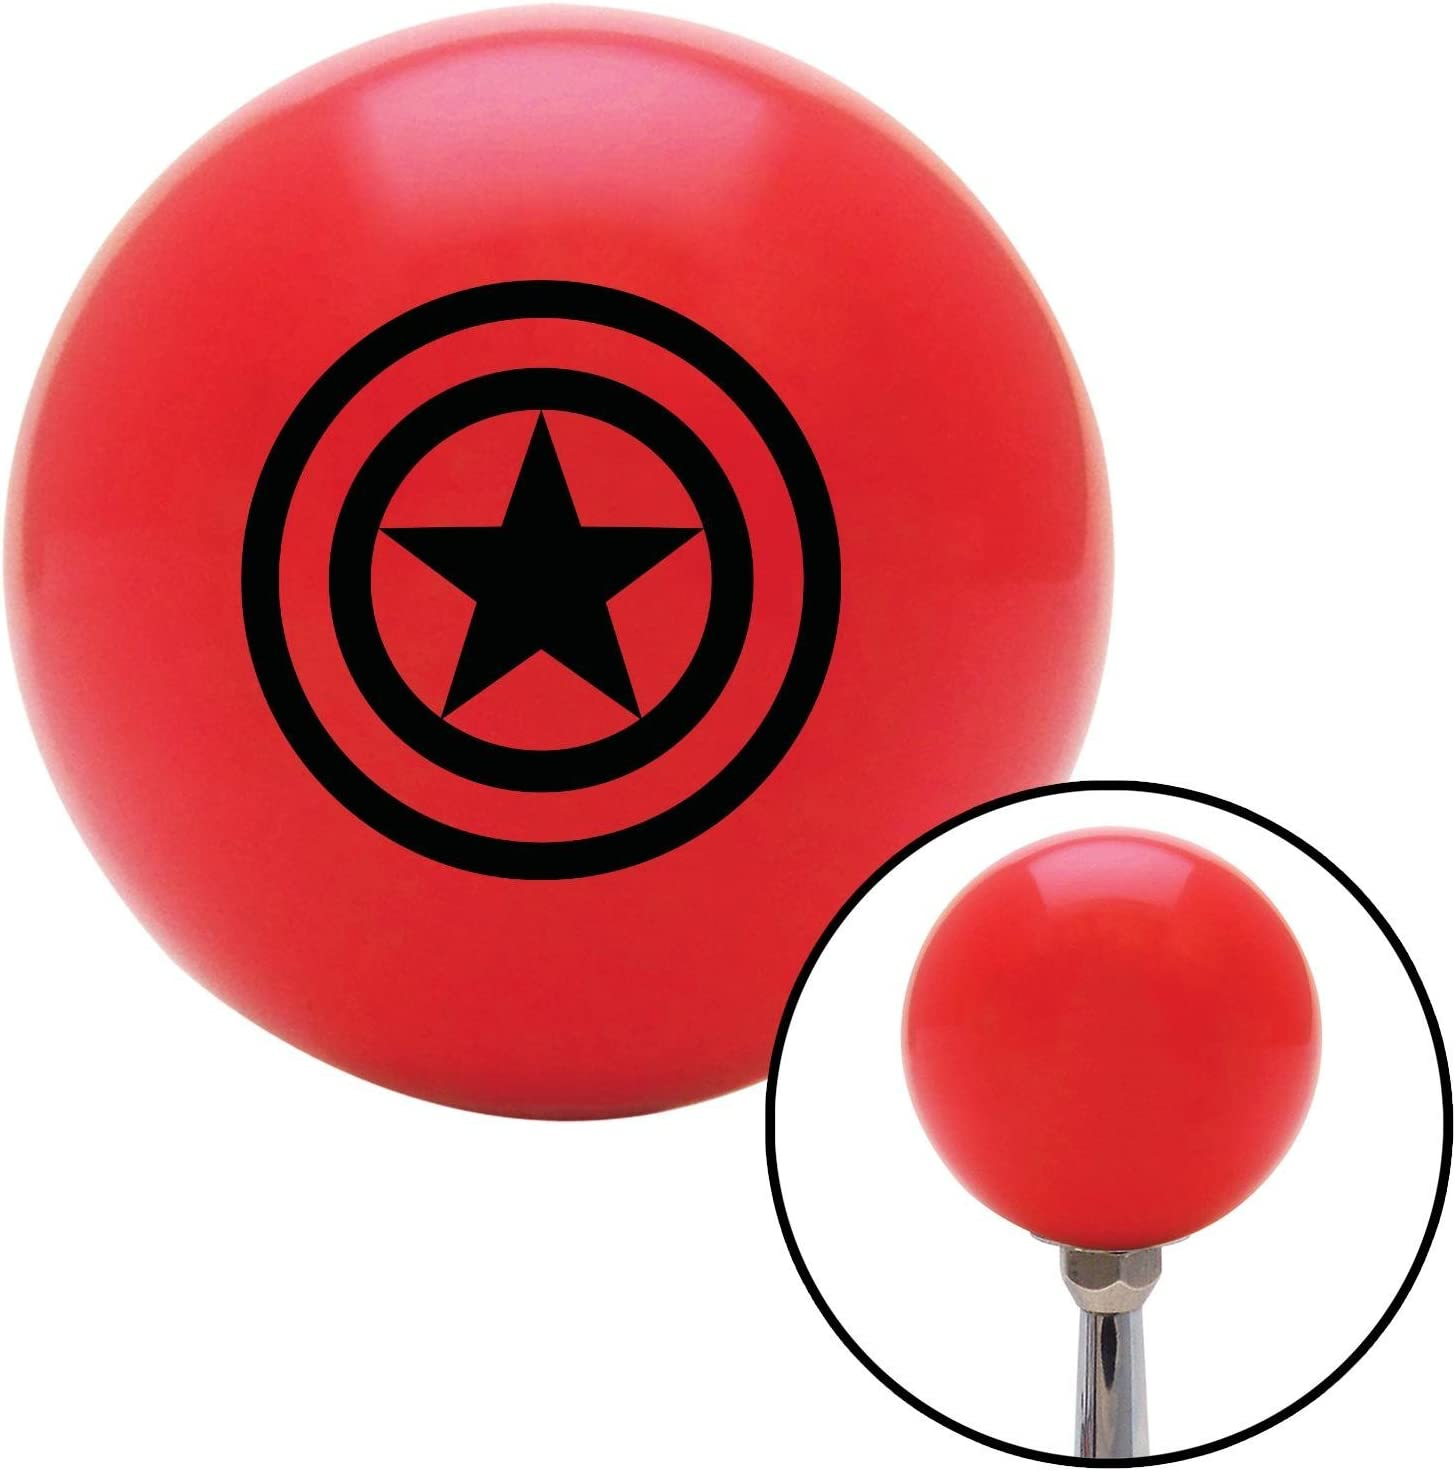 American Shifter 101437 Red Shift Knob with M16 x 1.5 Insert Black Star w// 2 Circles